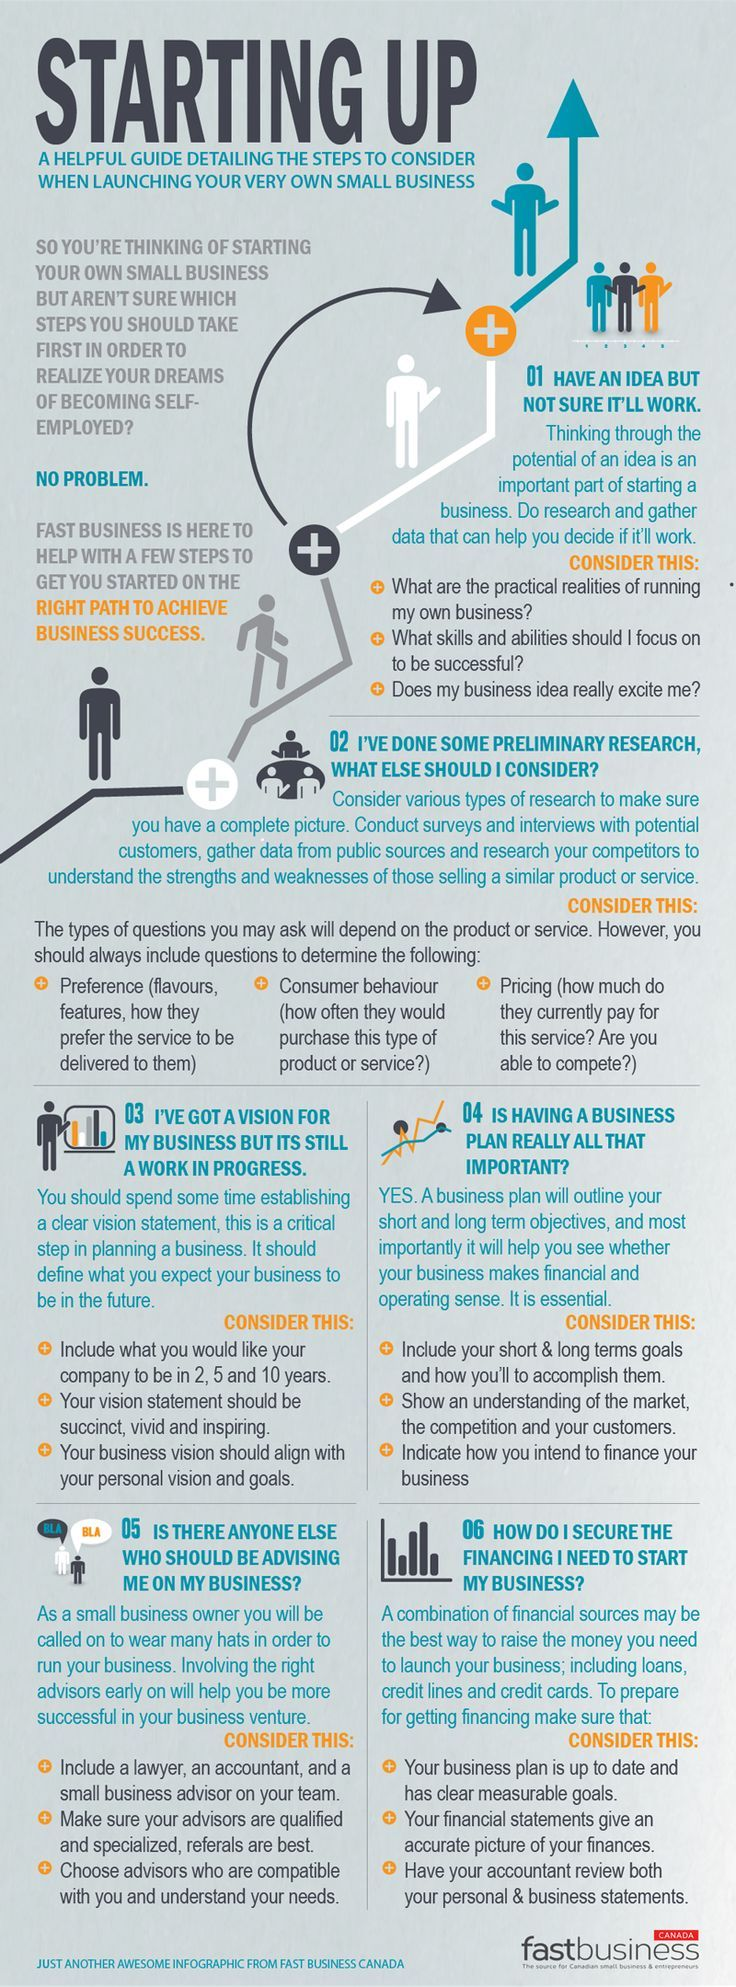 Starting Up: Quick Guide To Starting A Small Business ...